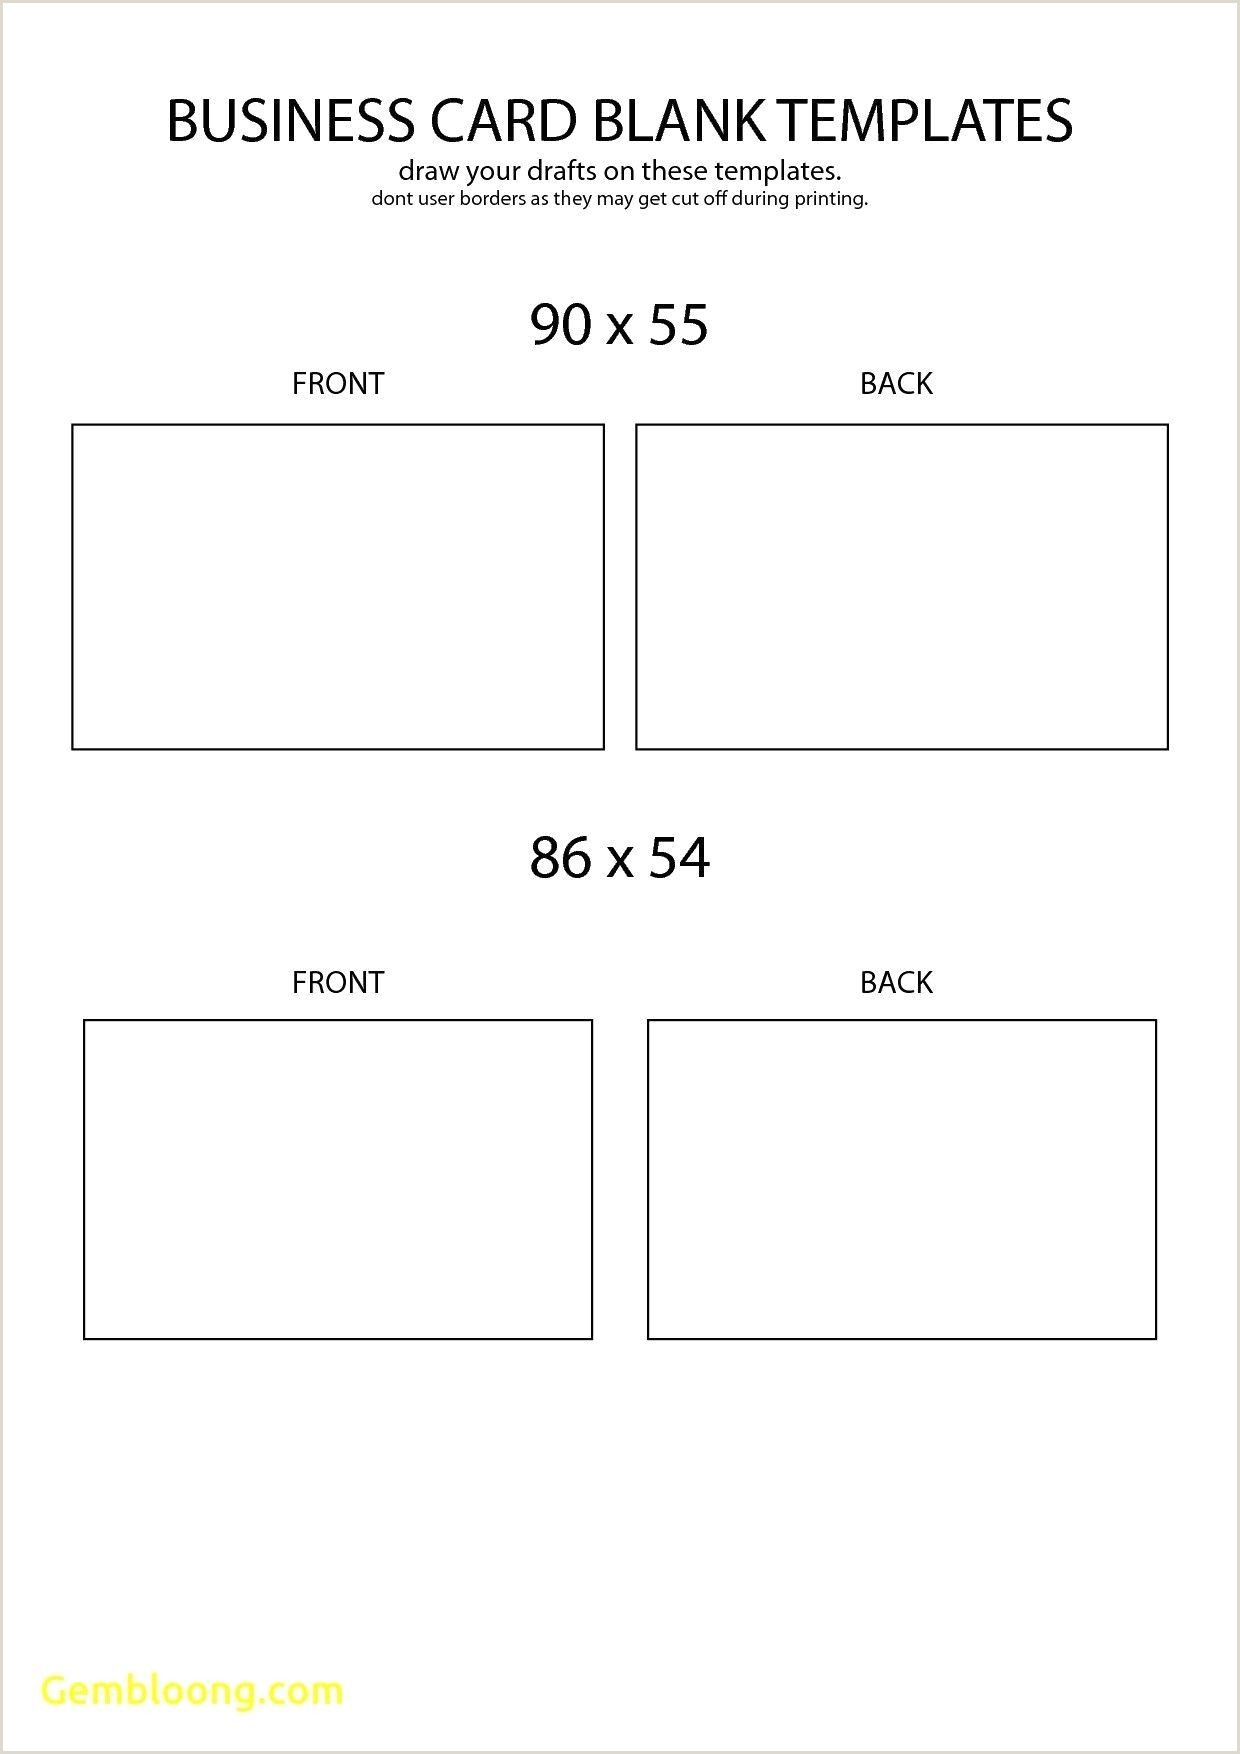 Business Card Template Front And Back The Marvellous 003 Business Card Blank Template Free